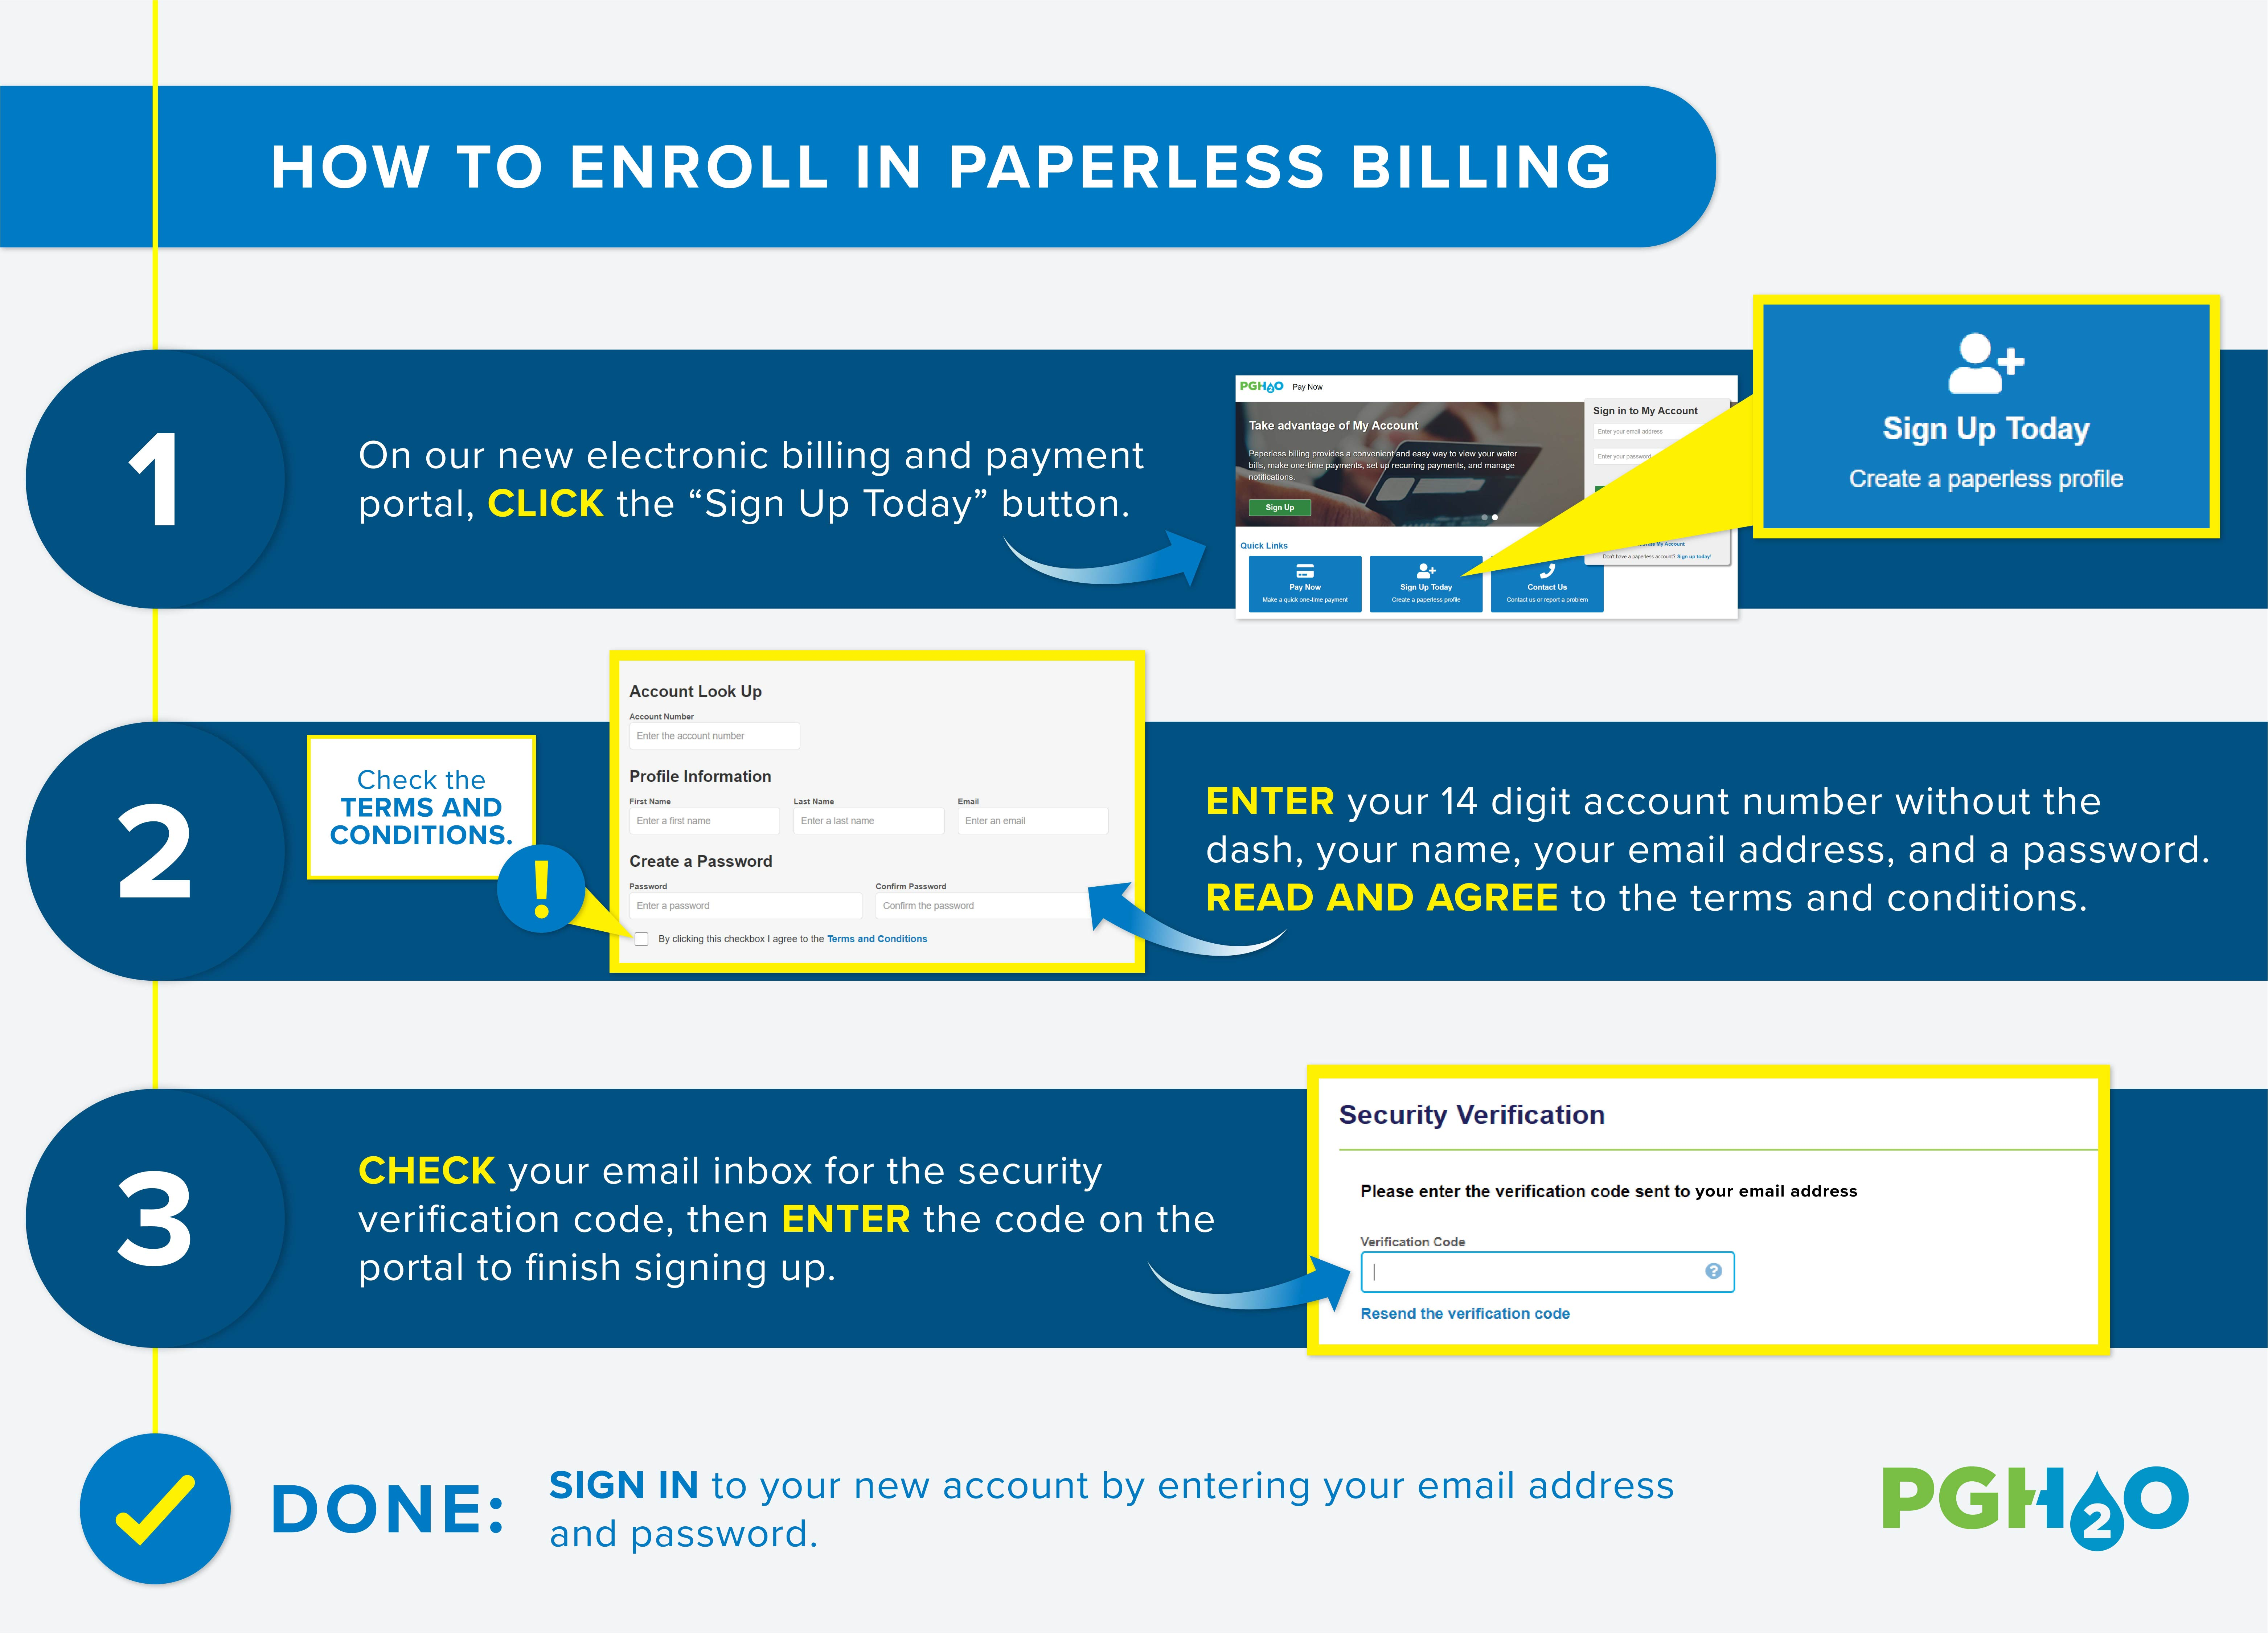 Infographic for How to Enroll in Paperless Billing. On our new electronic billing and payment portal, click the Sign Up Today button. Enter your 14 digit account number without the dash, your name, your email address, and a password. Read and agree to the terms and conditions. Check your email inbox for the security verification code, then enter it on the portal to finish signing up. Done! Sign in to your new account by entering your email address and password, then enter a new security verification code.